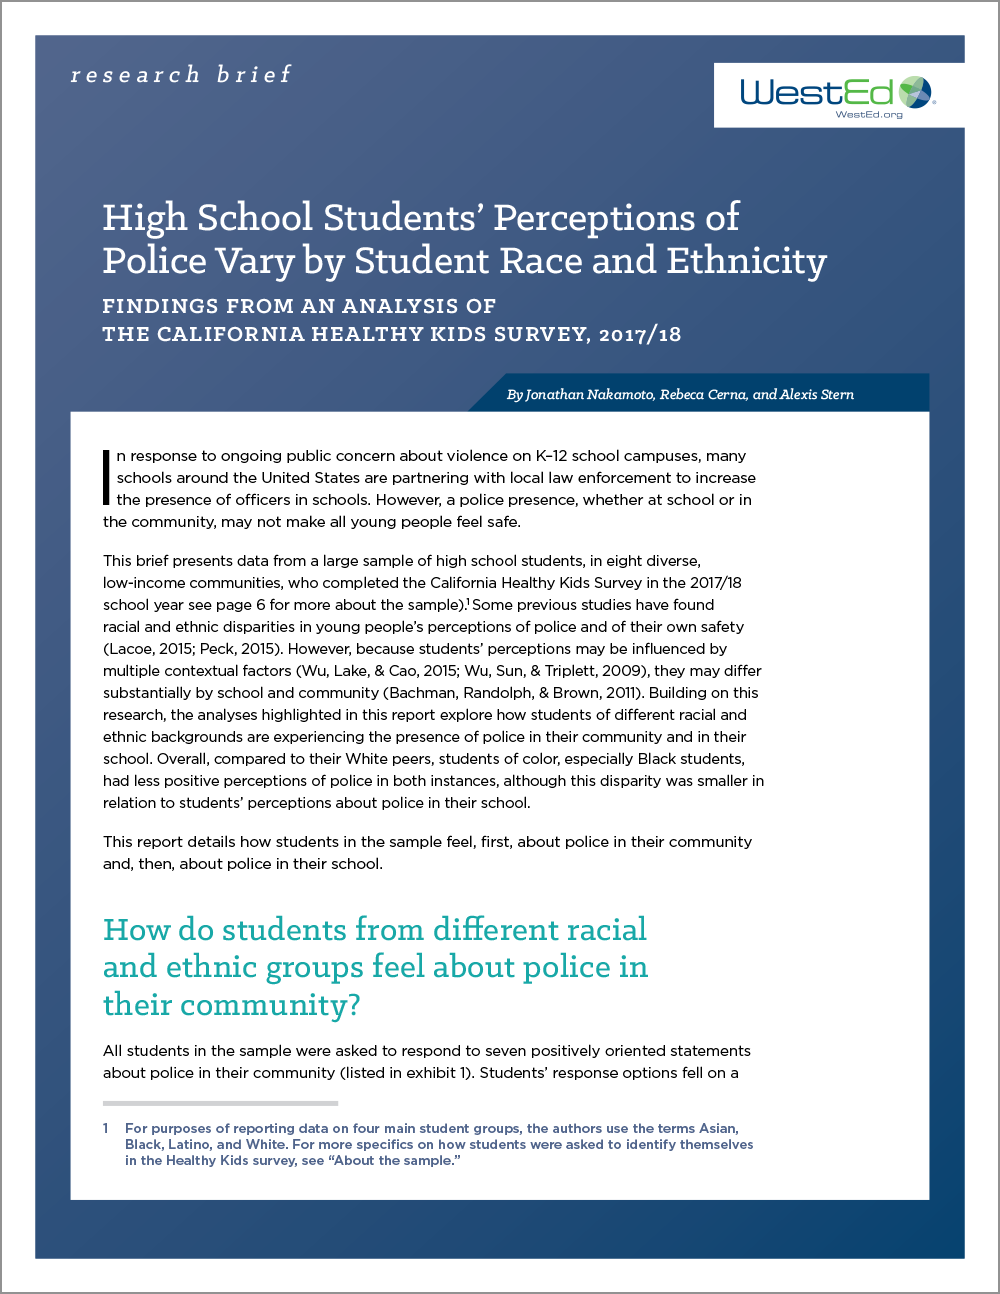 High School Students' Perceptions of Police Vary by Student Race and Ethnicity: Findings from an Analysis of the California Healthy Kids Survey, 2017/18